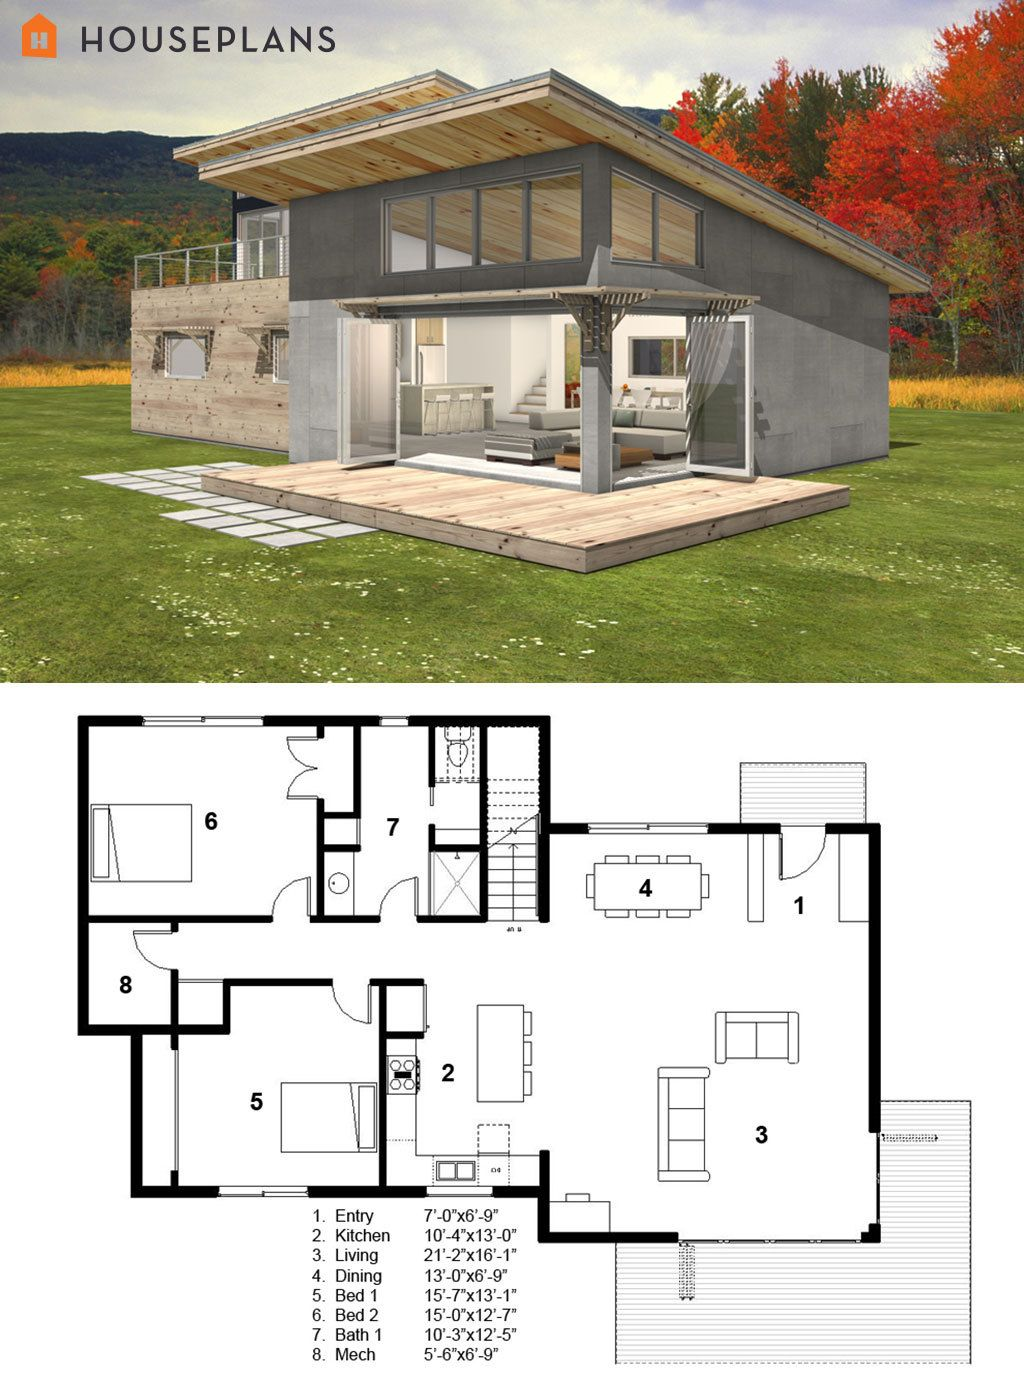 Small modern cabin house plan by freegreen energy for Camp plans